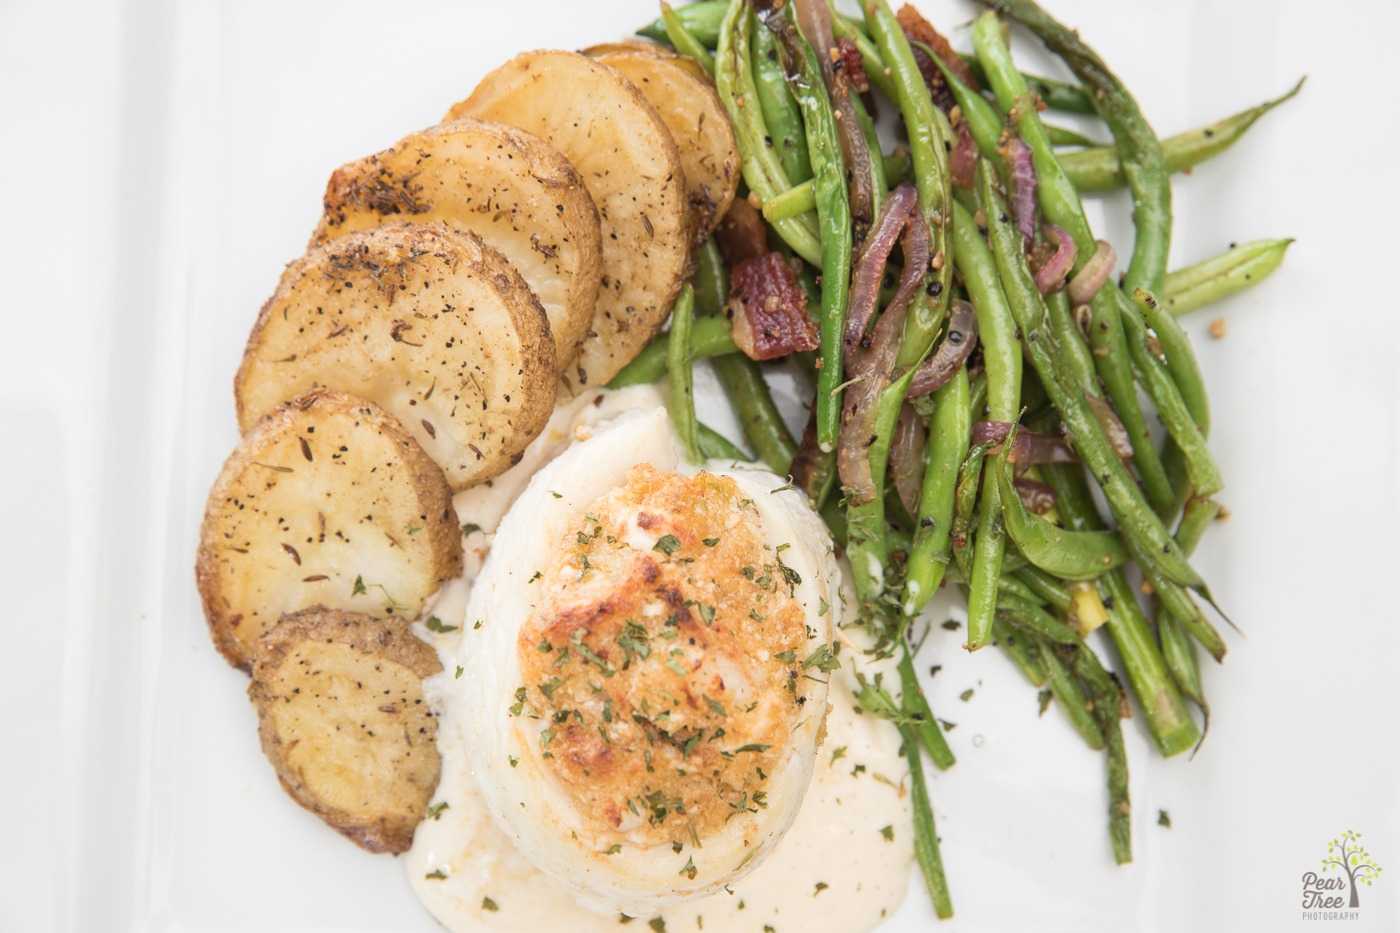 Stuffed tilapia, potatoes, and seasoned green beans with onions crafted by Divine Taste of Heaven.